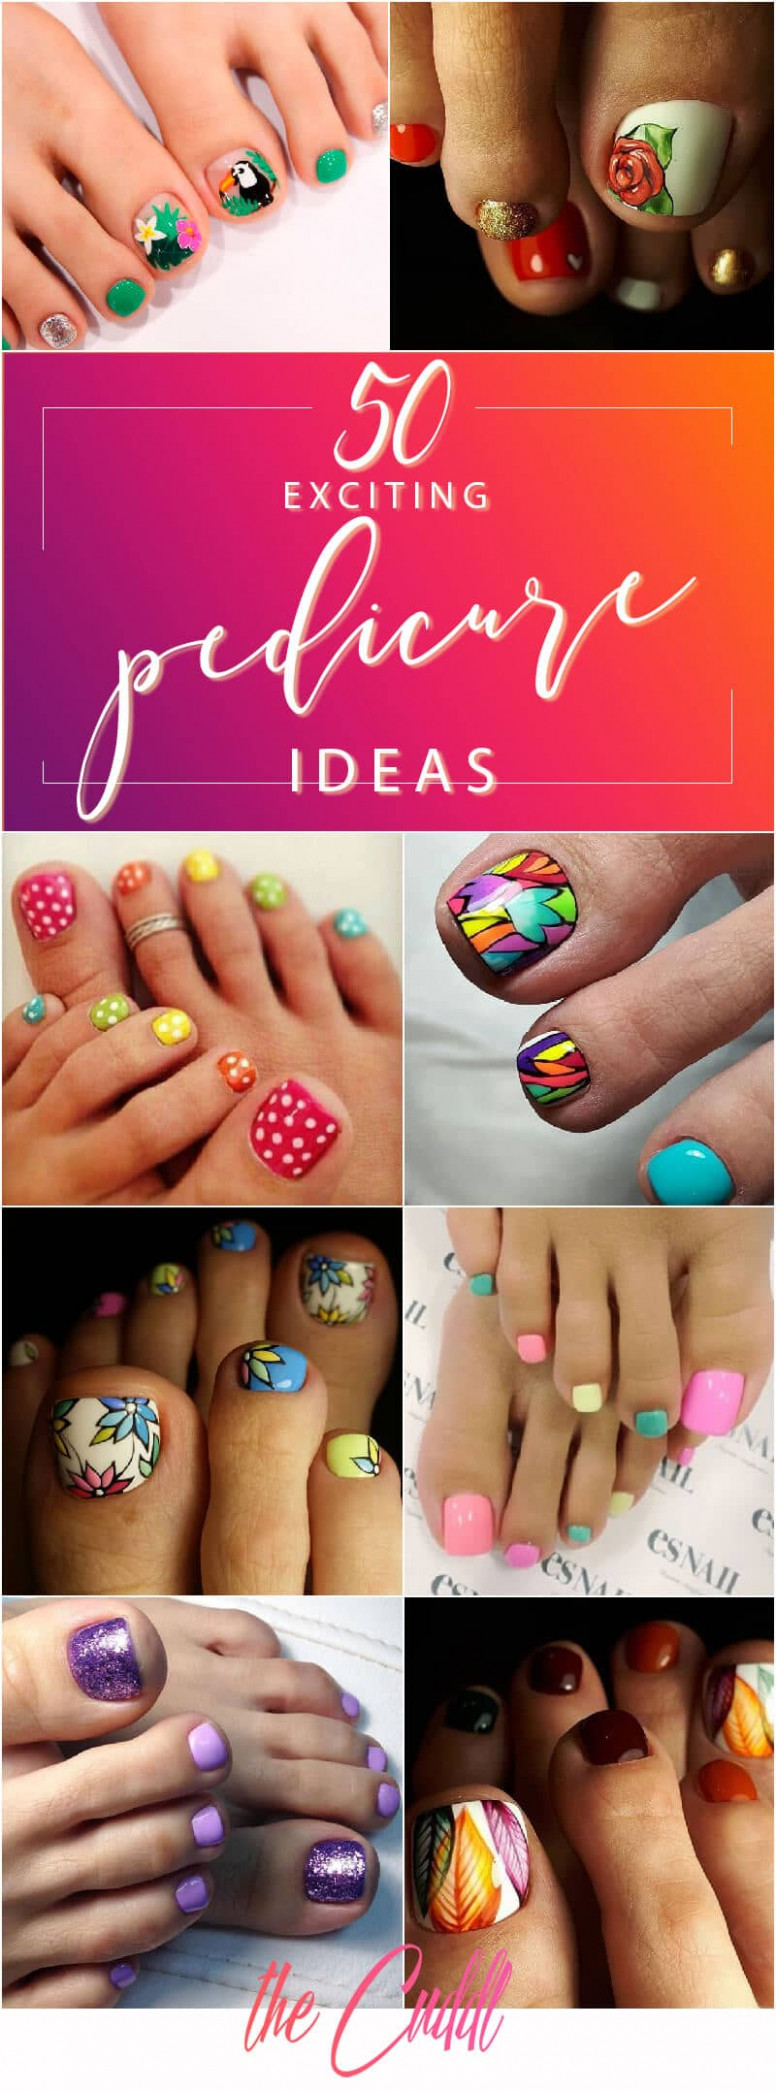 11 Exciting Pedicure Ideas to Shake Things Up